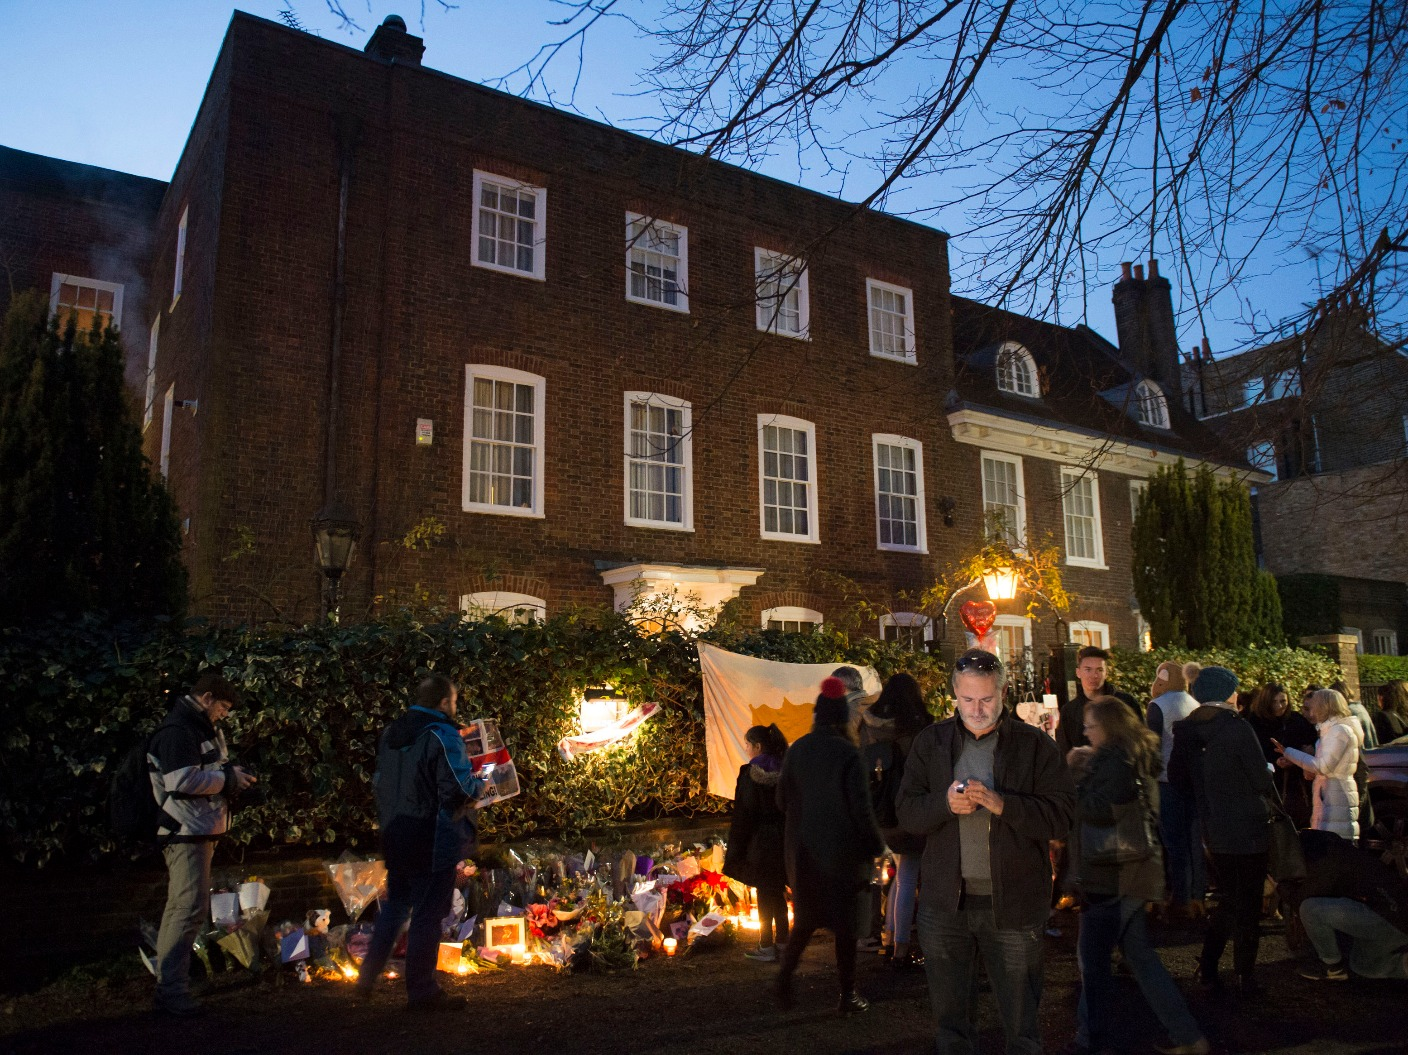 George Michaels Home In Highgate, North London Christmas 2020 Mourners gather at George Michael's house in Highgate | London